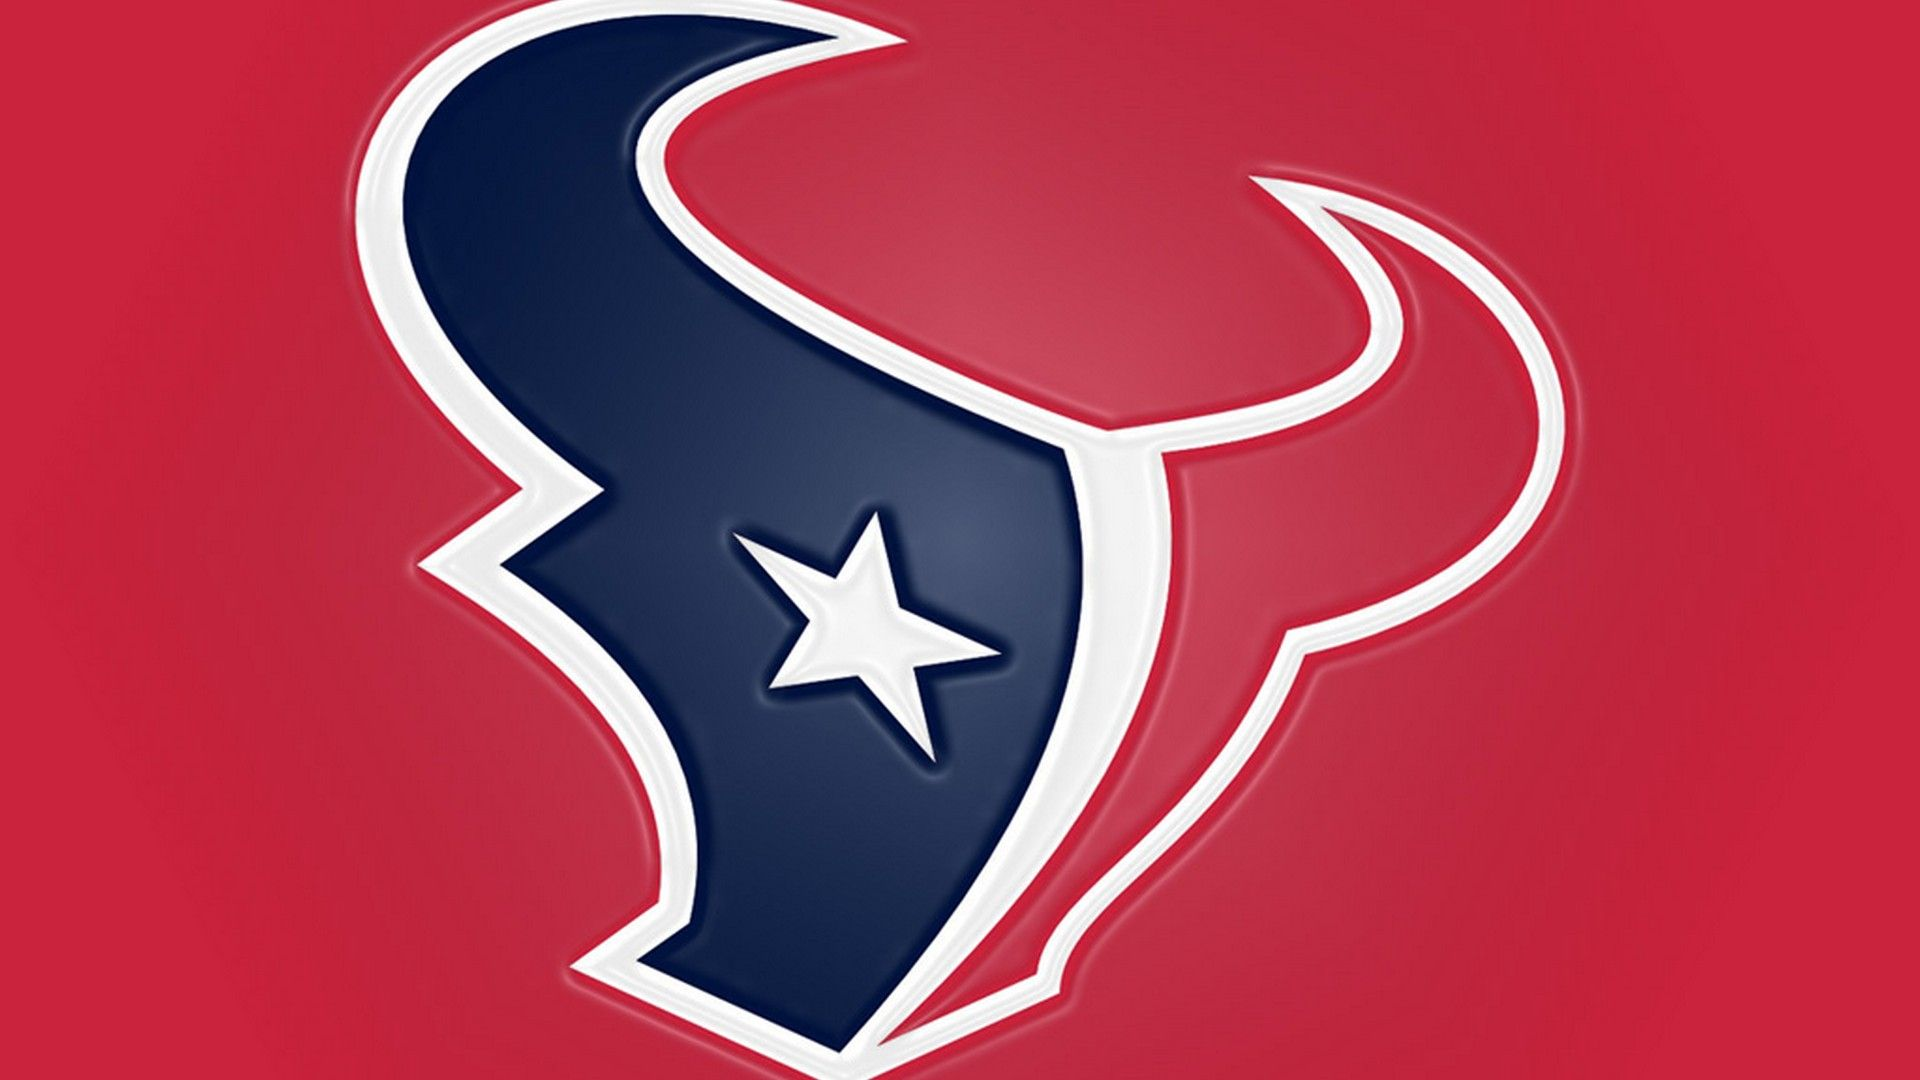 Houston Texans Backgrounds HD Wallpapers Houston texans 1920x1080